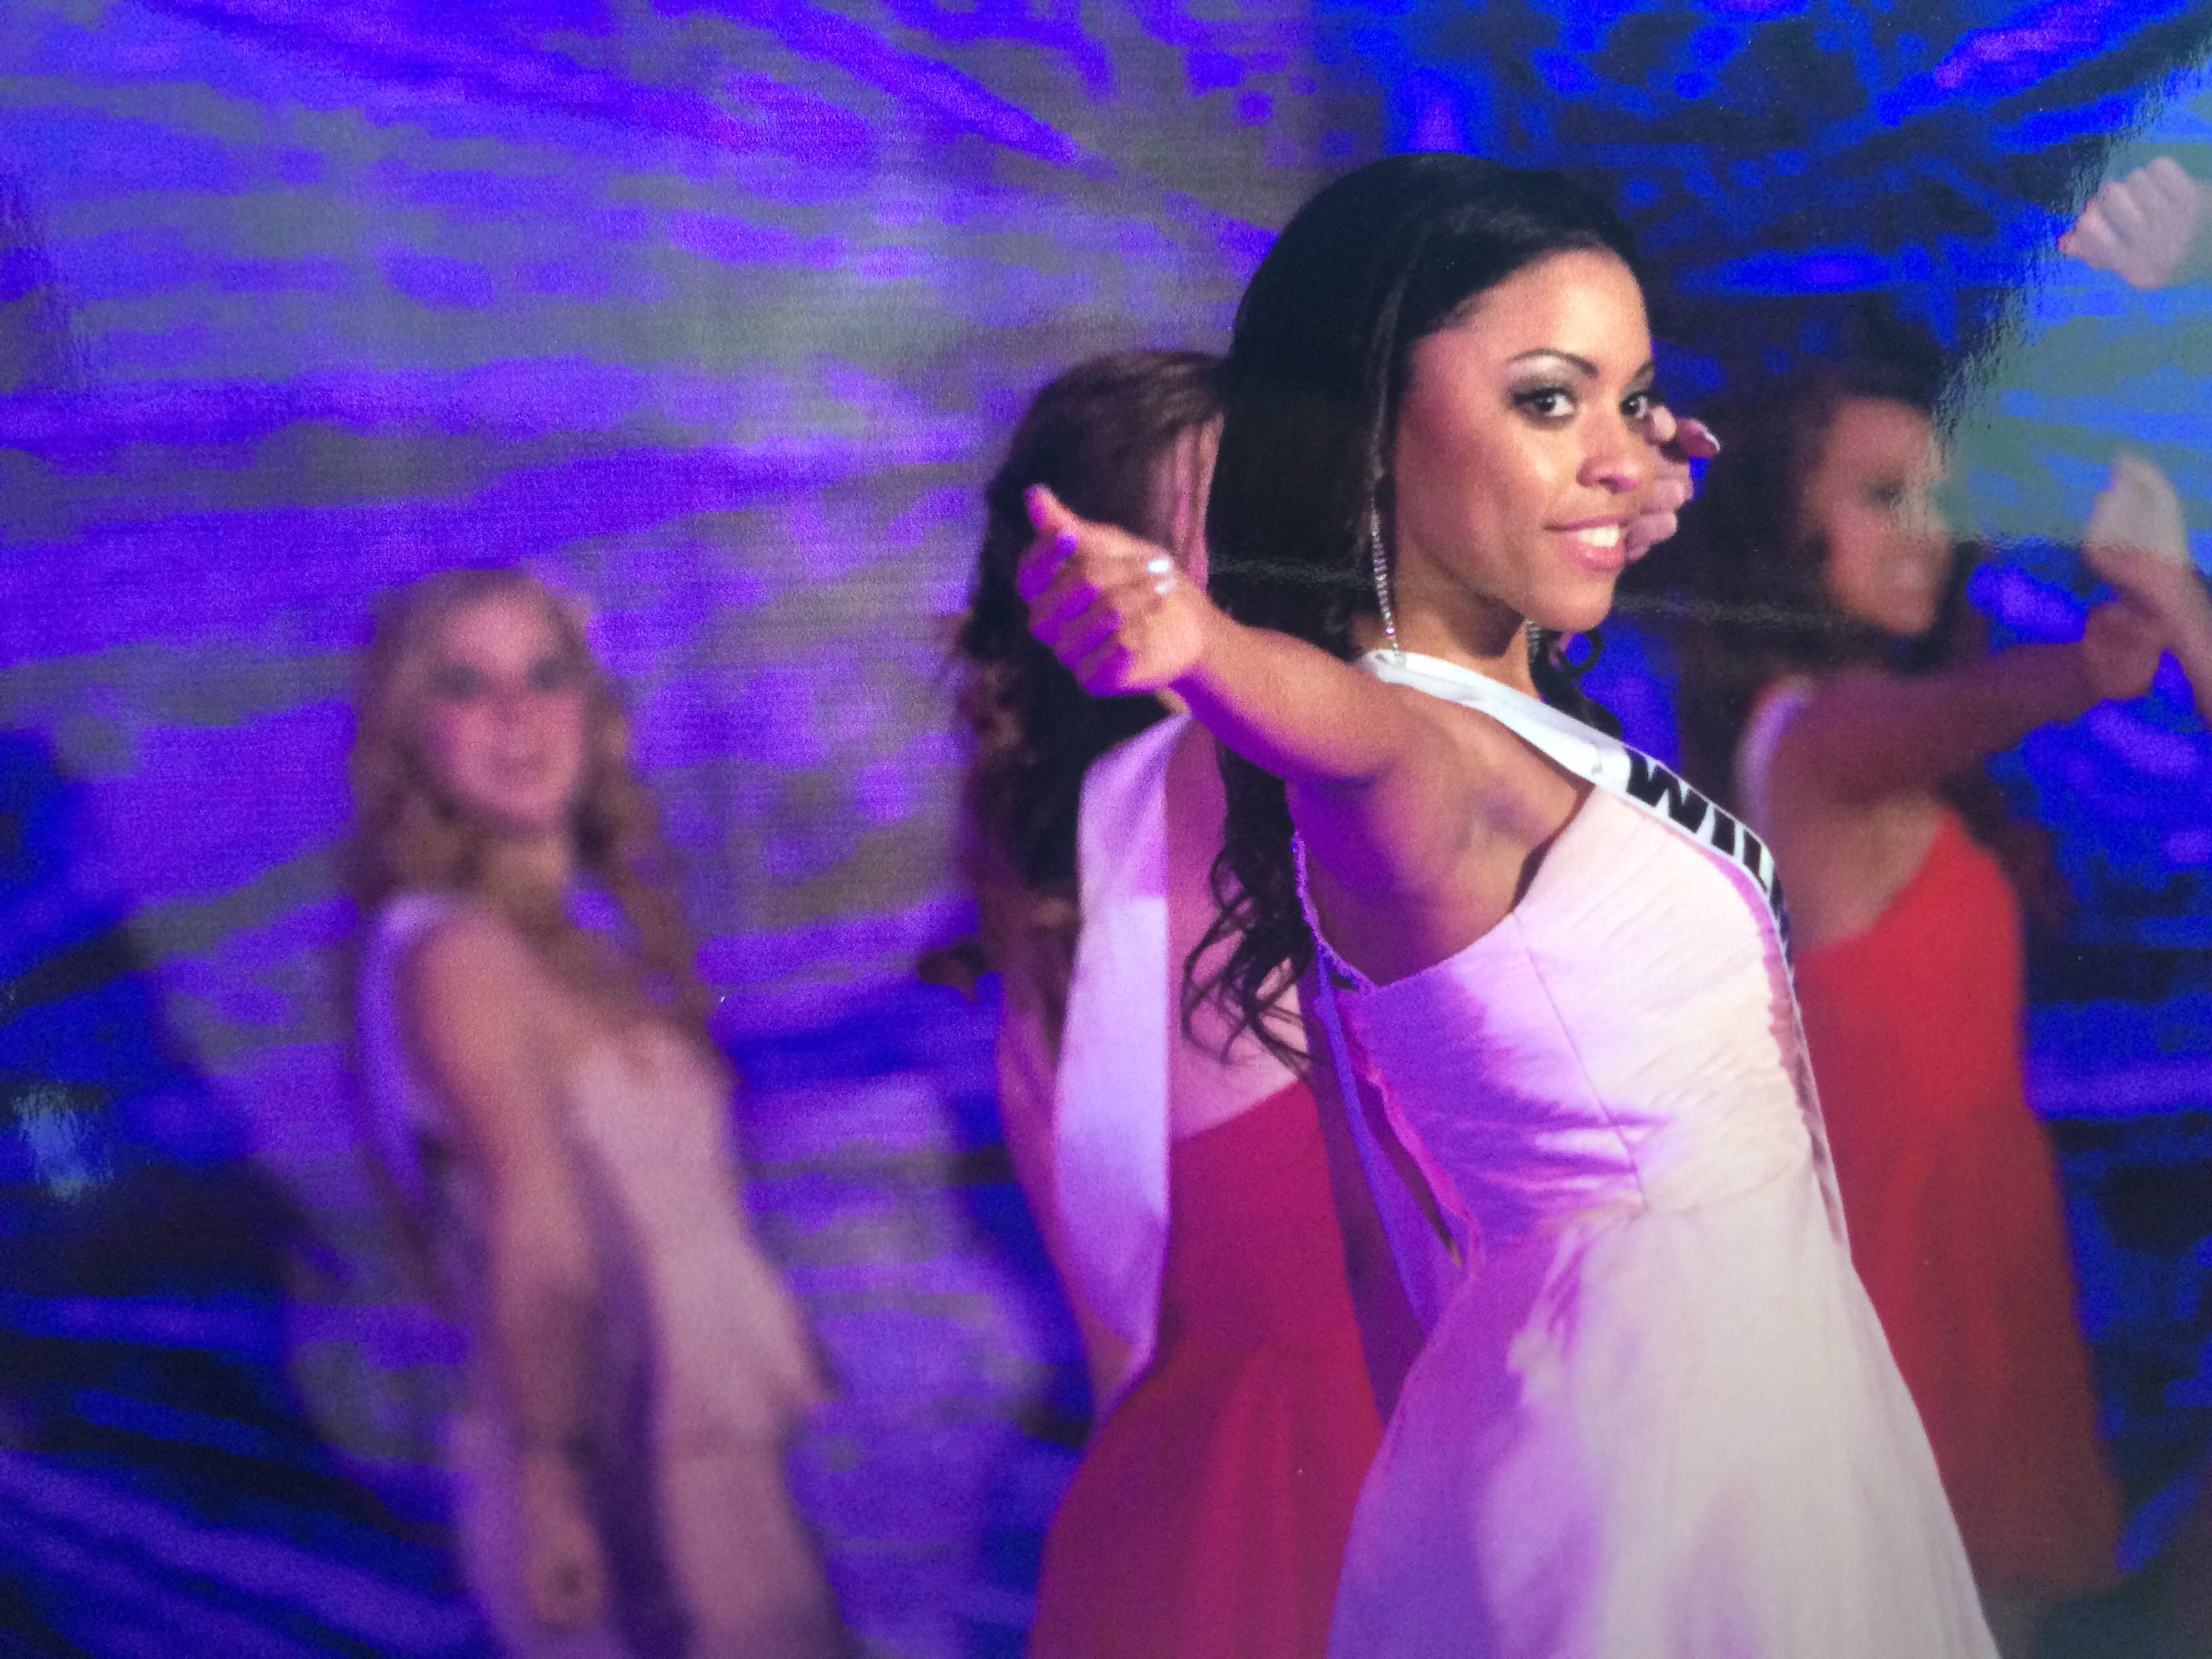 Caption: Cierra Smith on stage at the Miss Delaware Teen USA 2015 Pageant.